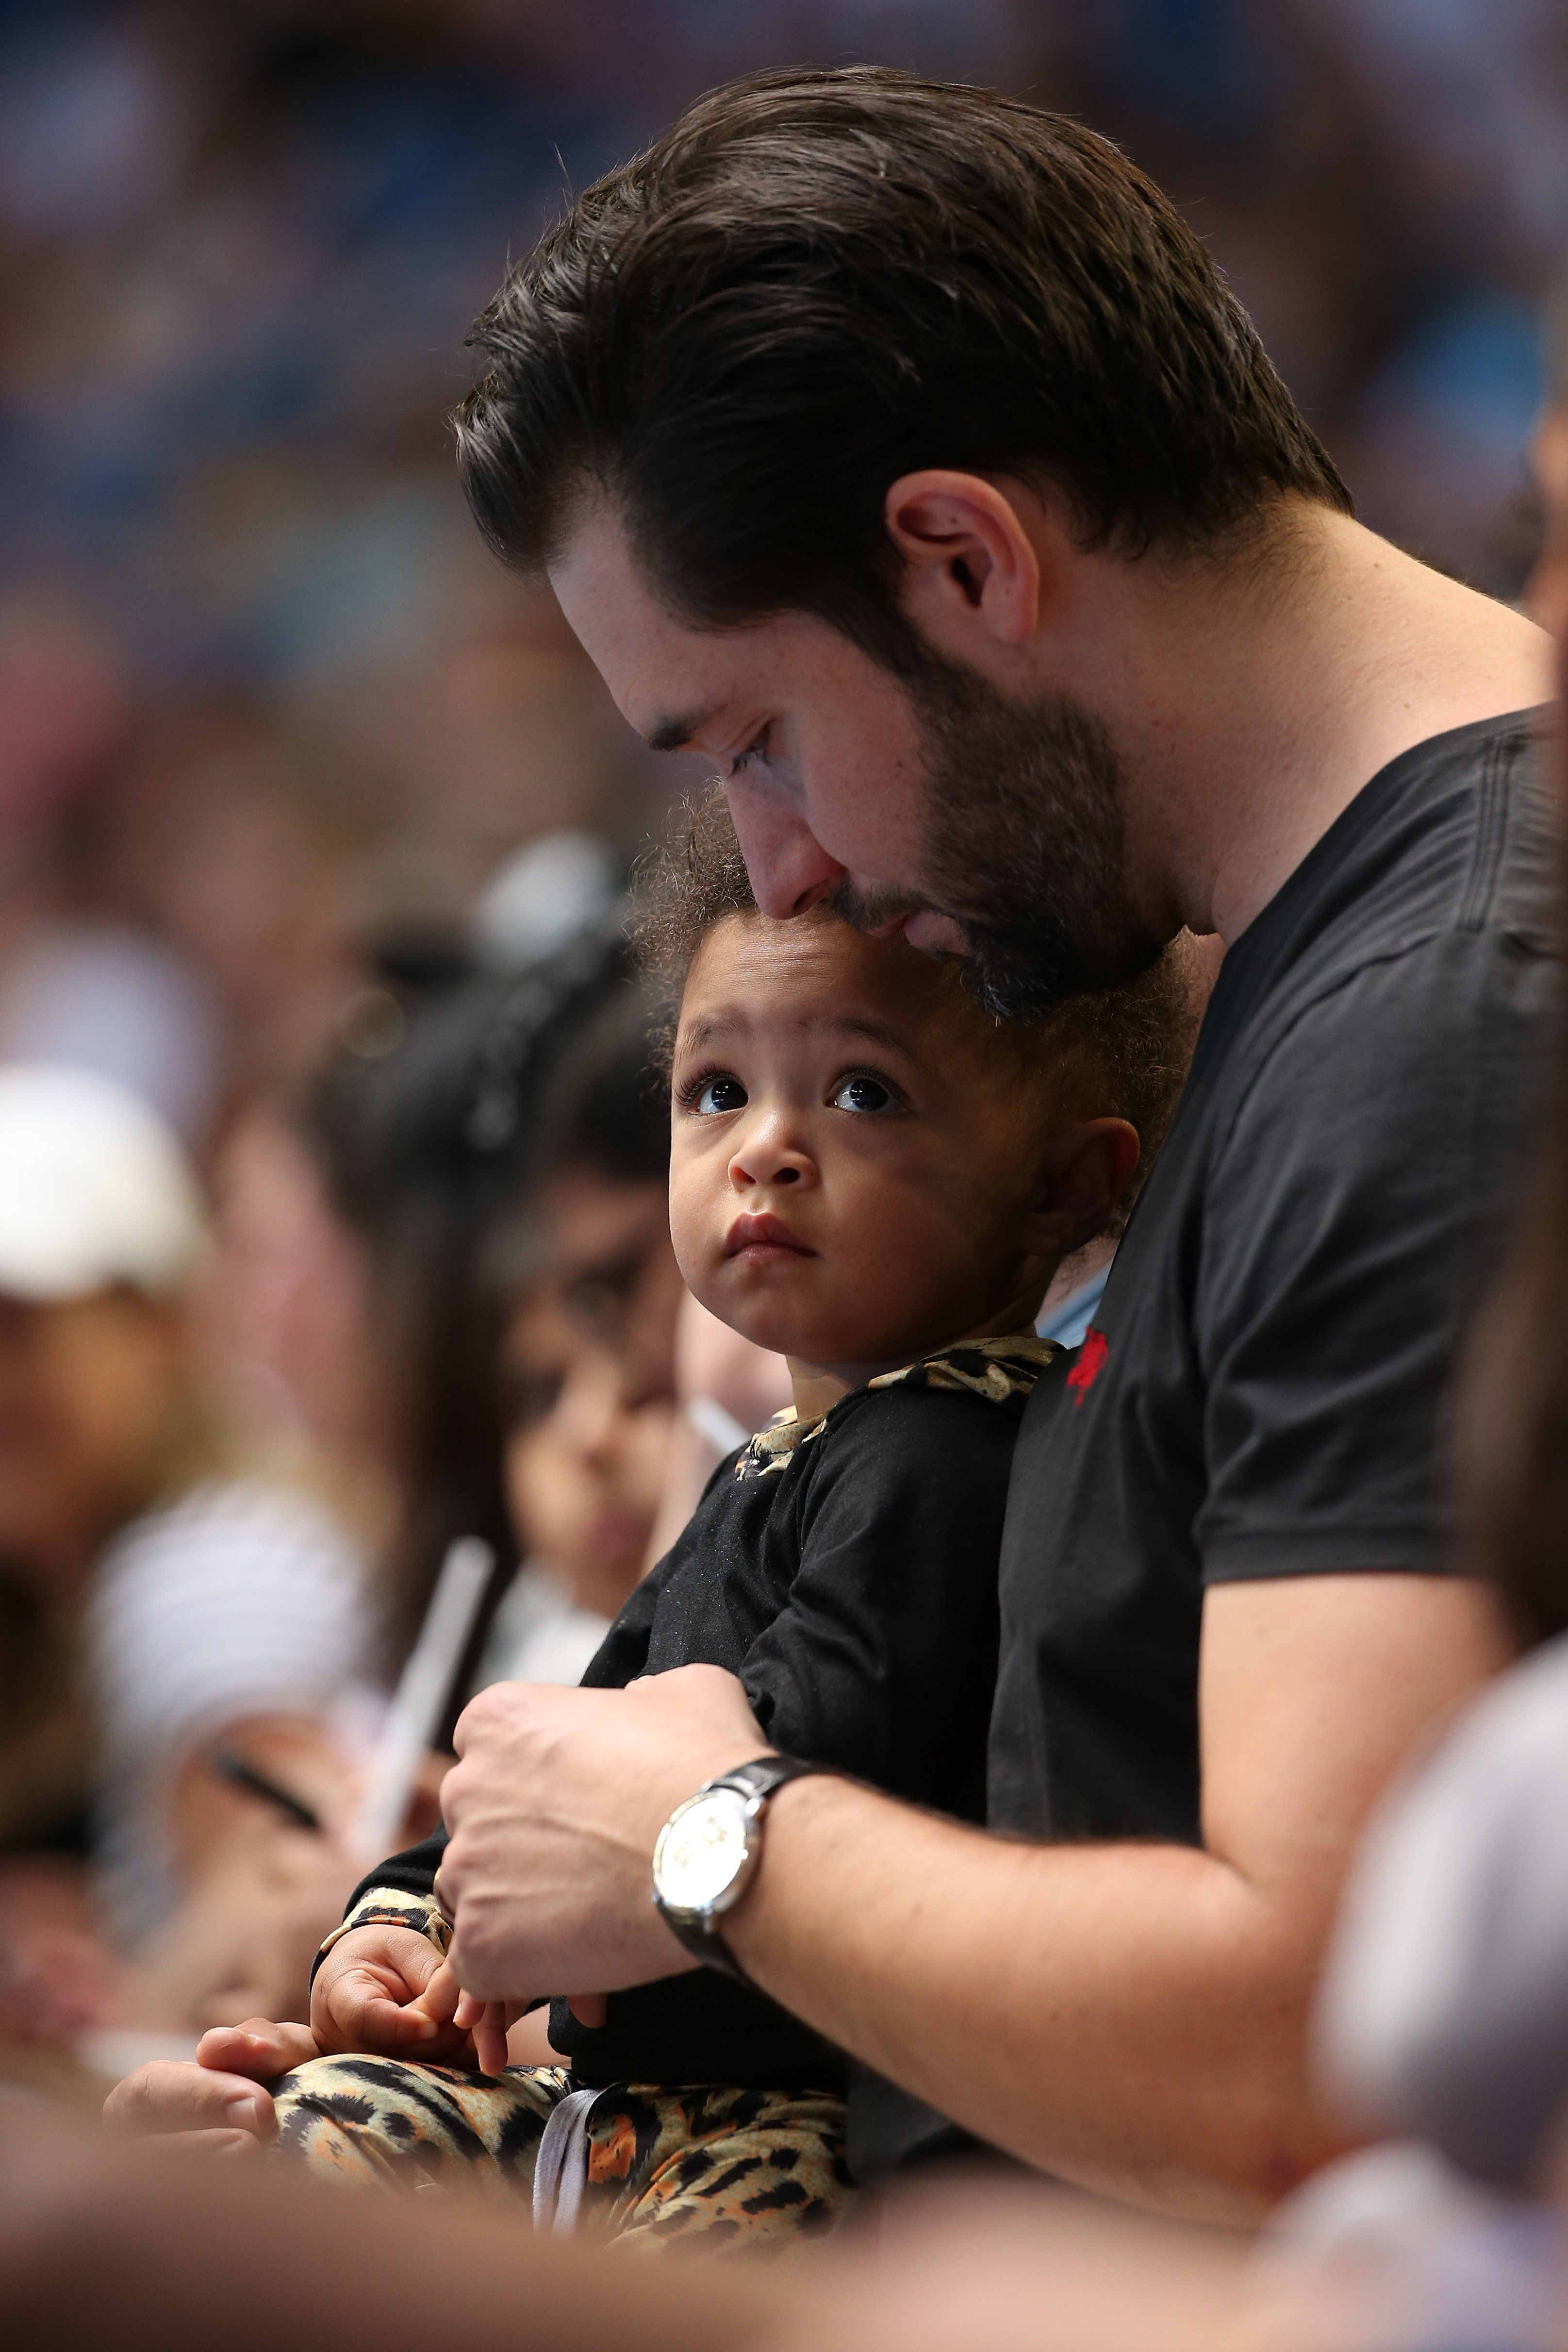 Serena Williams' husband Alexis Ohanian holds their daughter Alexis Olympia Ohanian Jr. during one of her tennis matches on January 03, 2019 in Perth, Australia. | Source: Getty Images